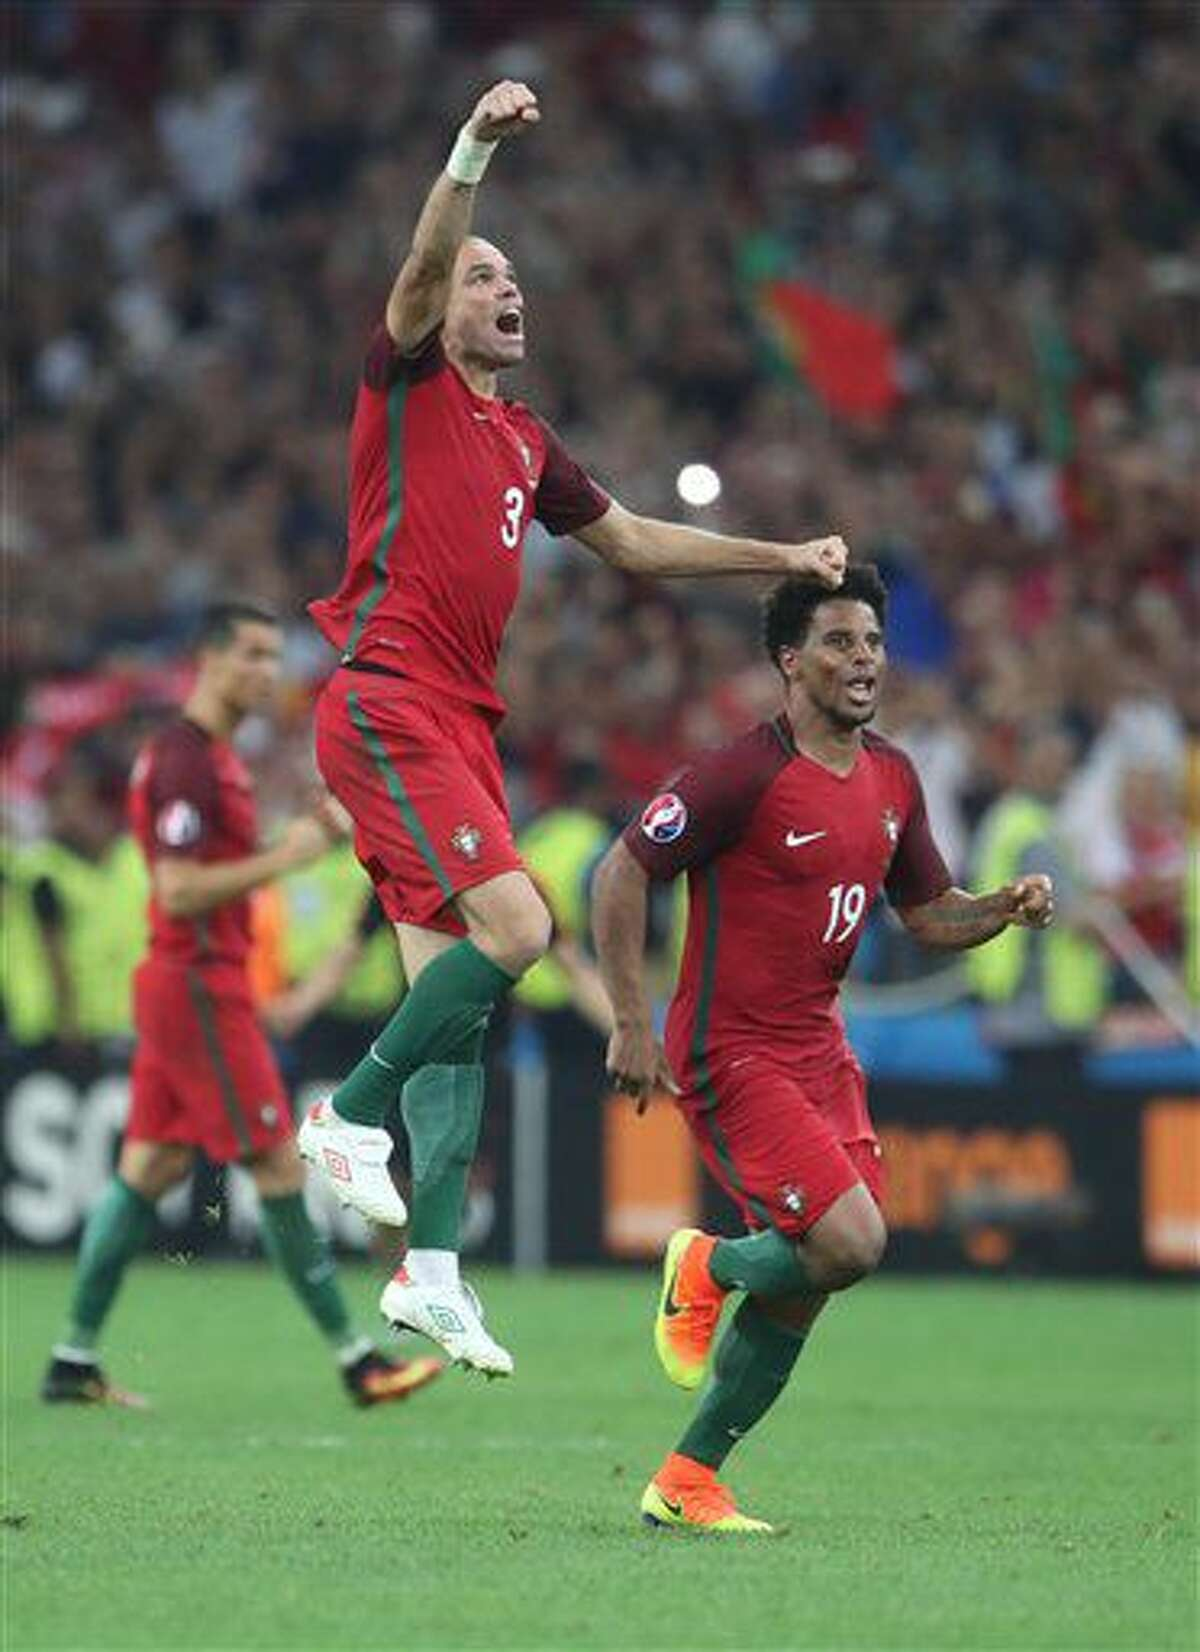 Portugal's Pepe, left, celebrates with Portugal's Eliseu winning the Euro 2016 quarterfinal soccer match between Poland and Portugal, at the Velodrome stadium in Marseille, France, Thursday, June 30, 2016. (AP Photo/Petr David Josek)